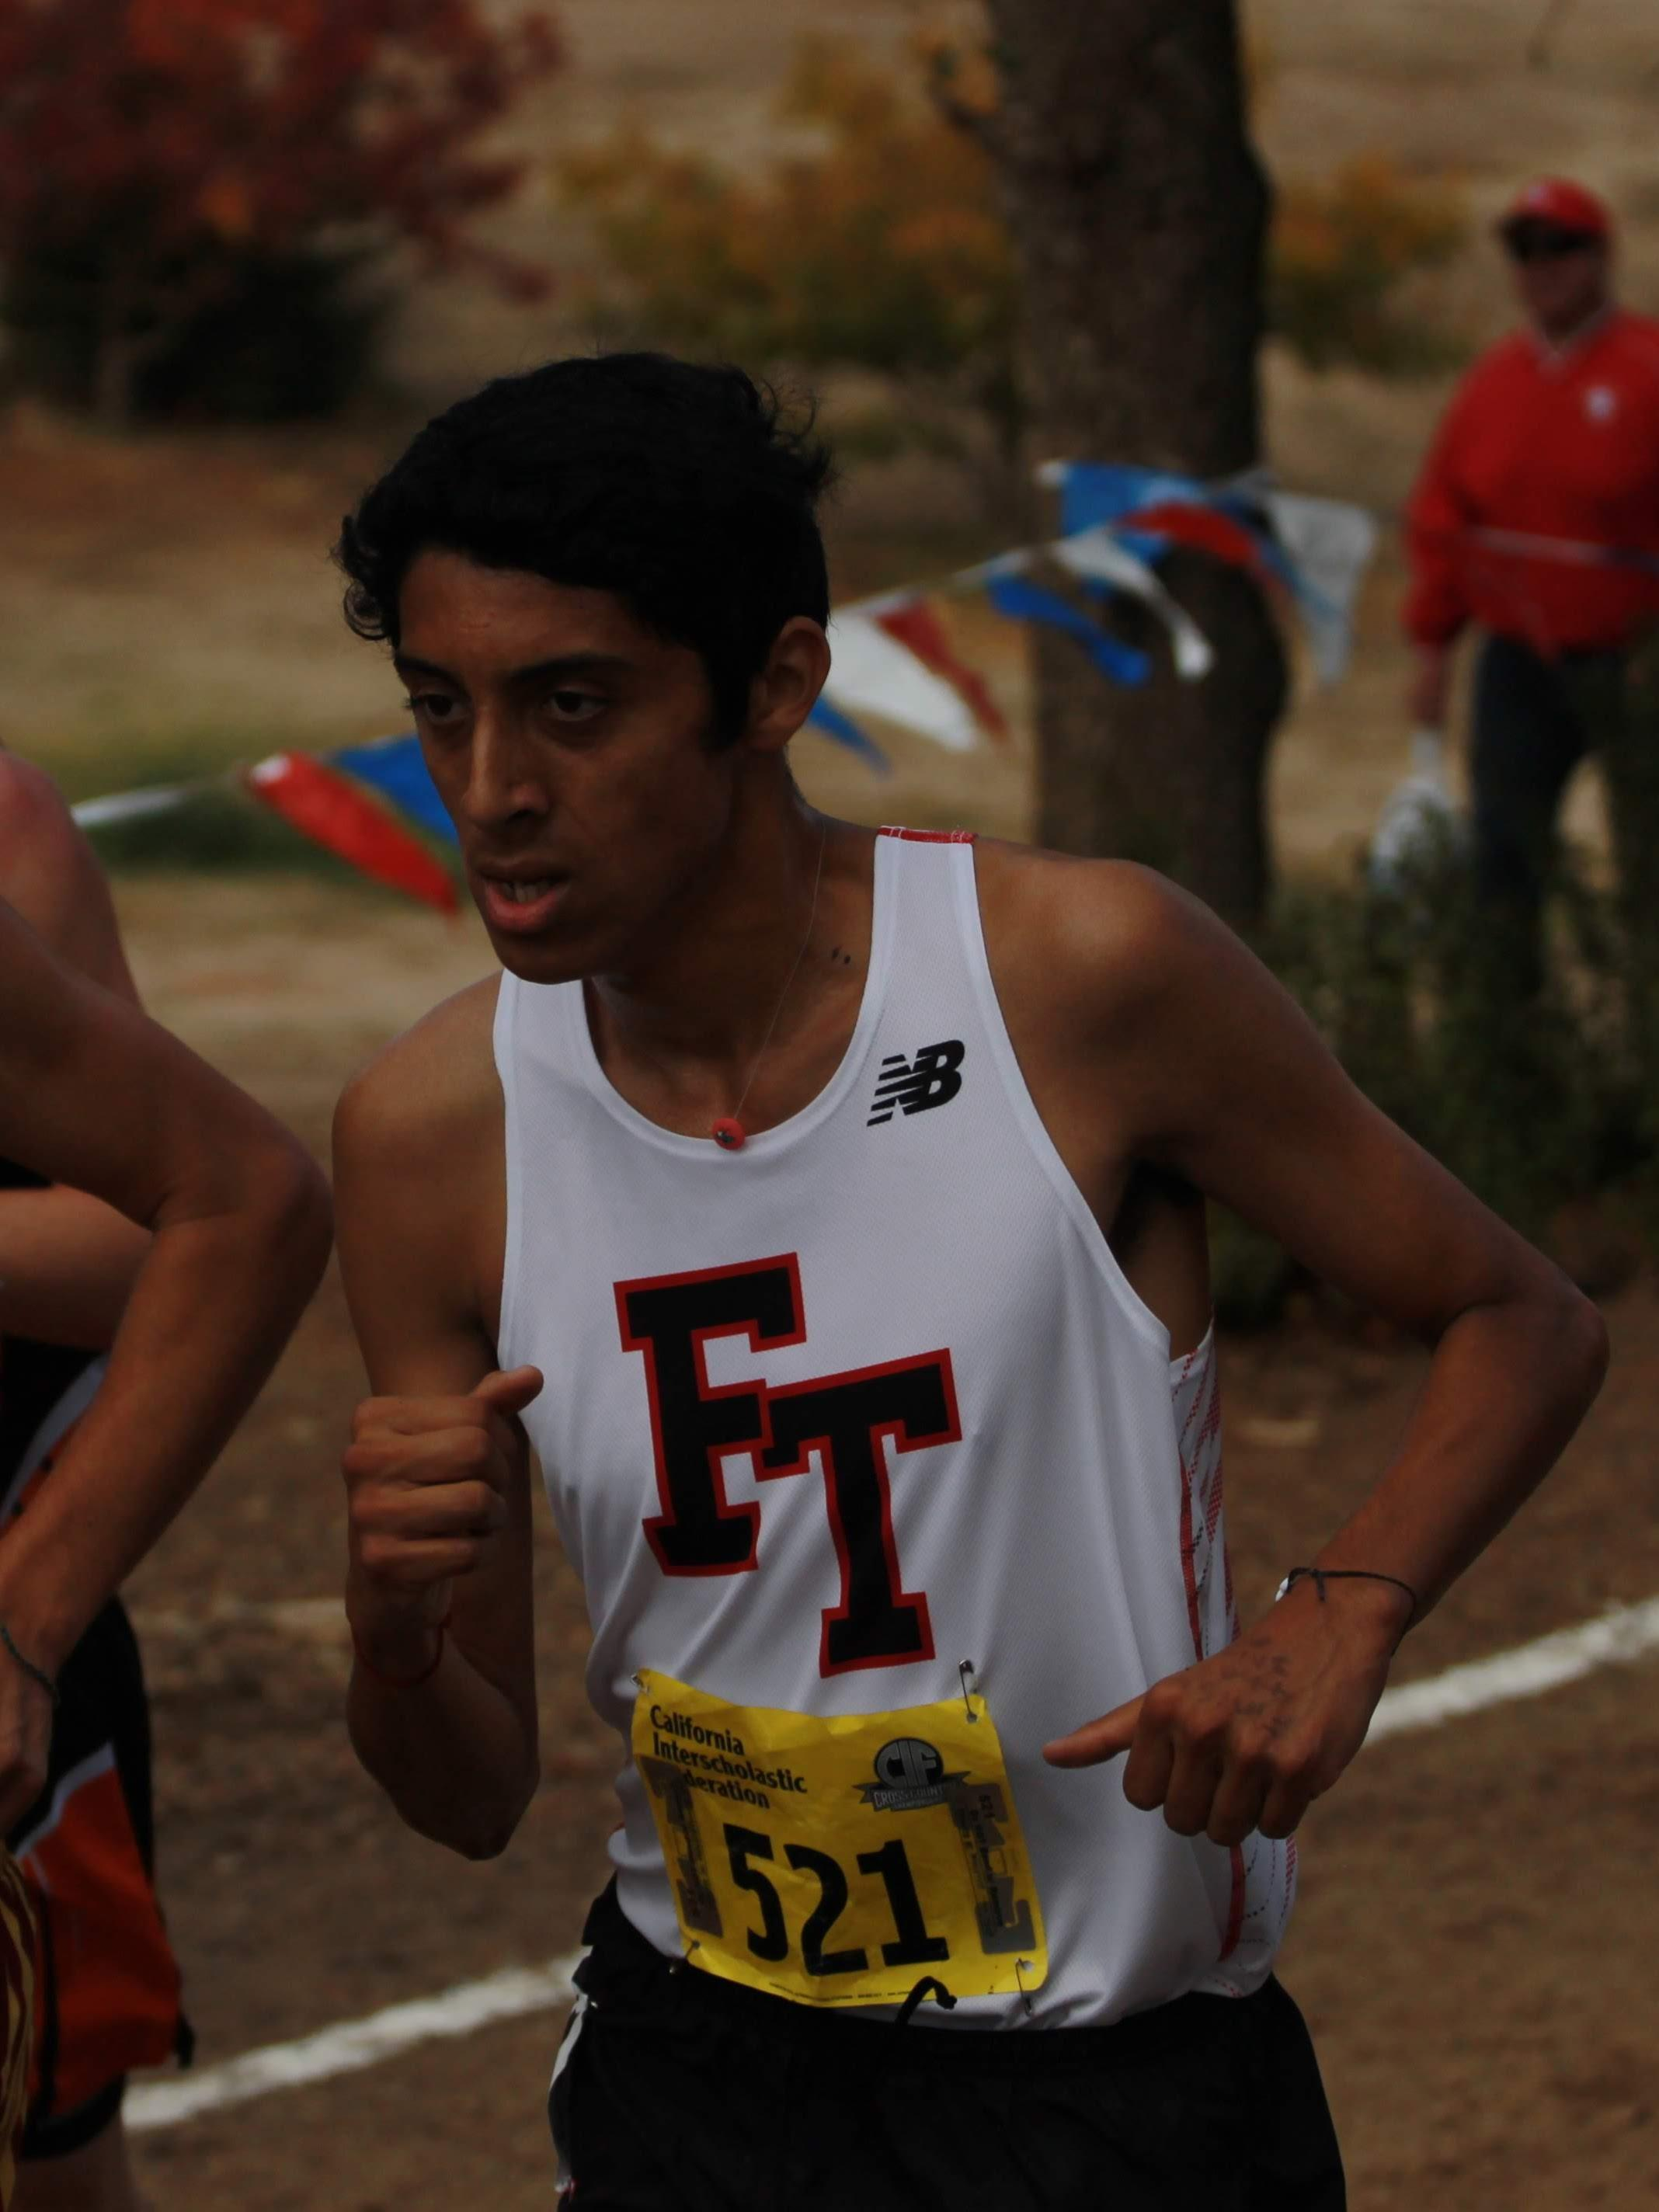 """Daniel Montes runs, wearing his necklace from the """"Buttons for Buddies"""" club. Brooke Secreto moves down a slight hill. Credit: Jocelyn Brossia / The Foothill Dragon Press"""